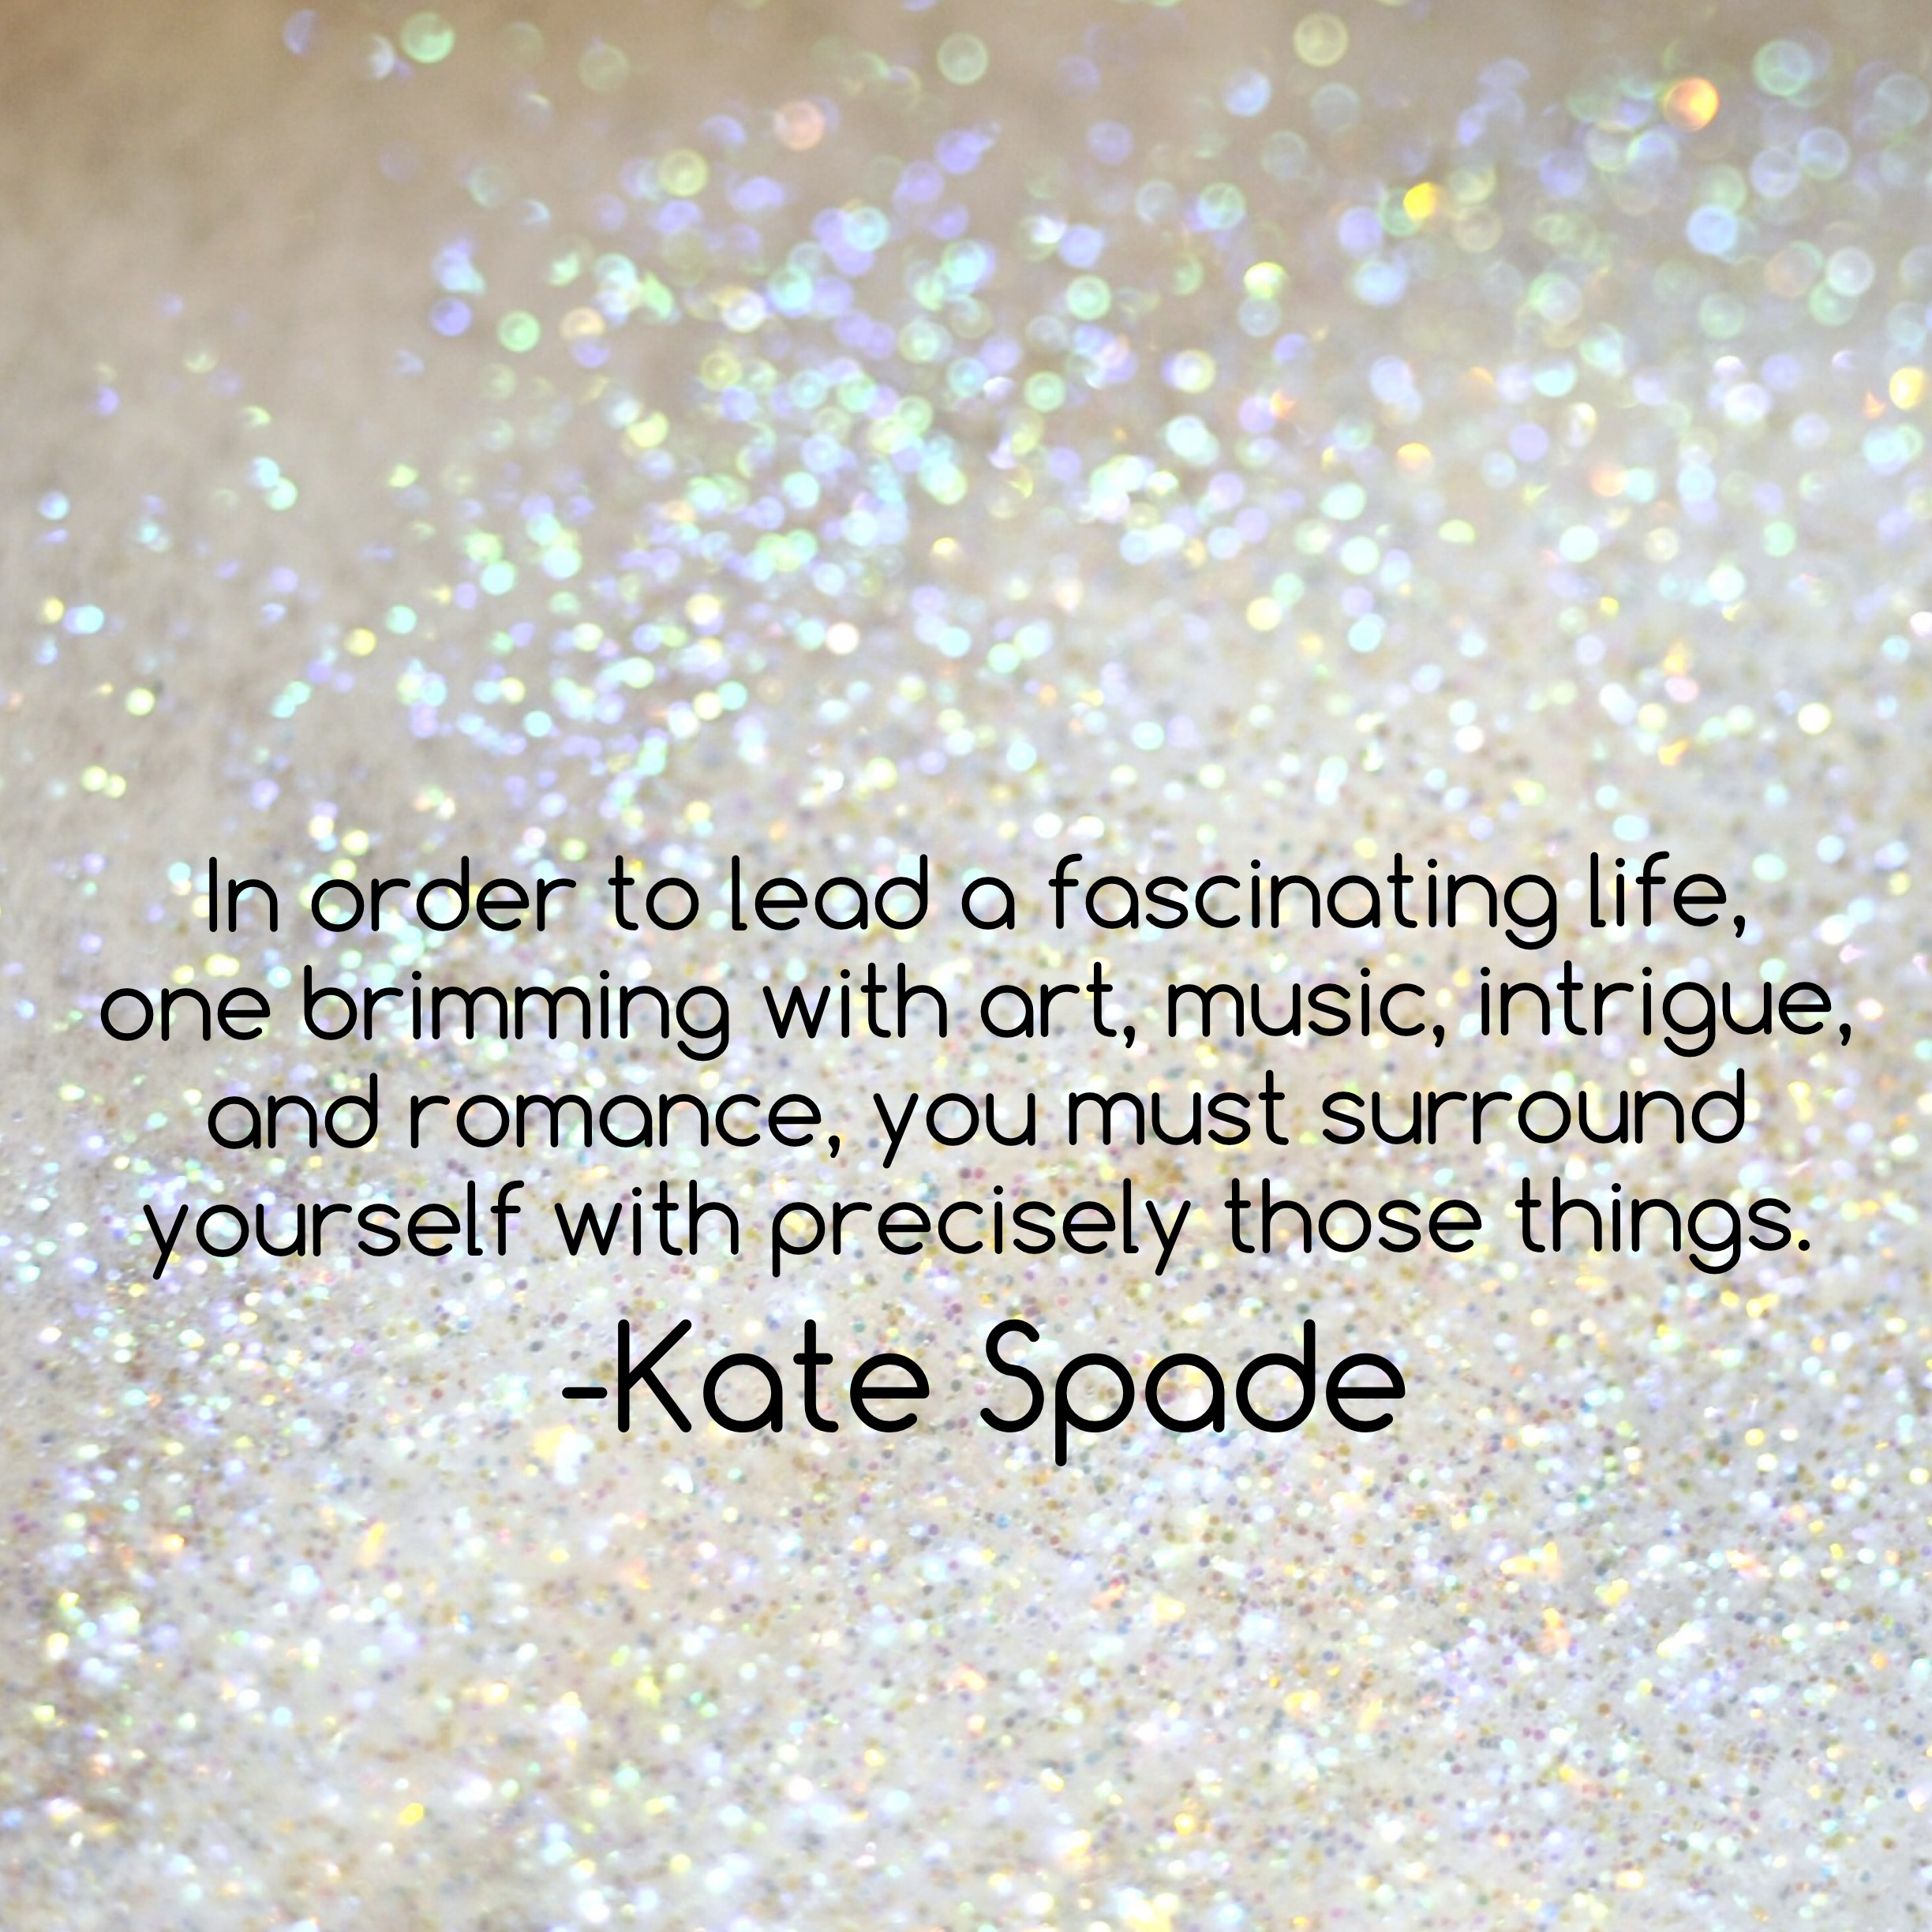 Kate Spade_Quote